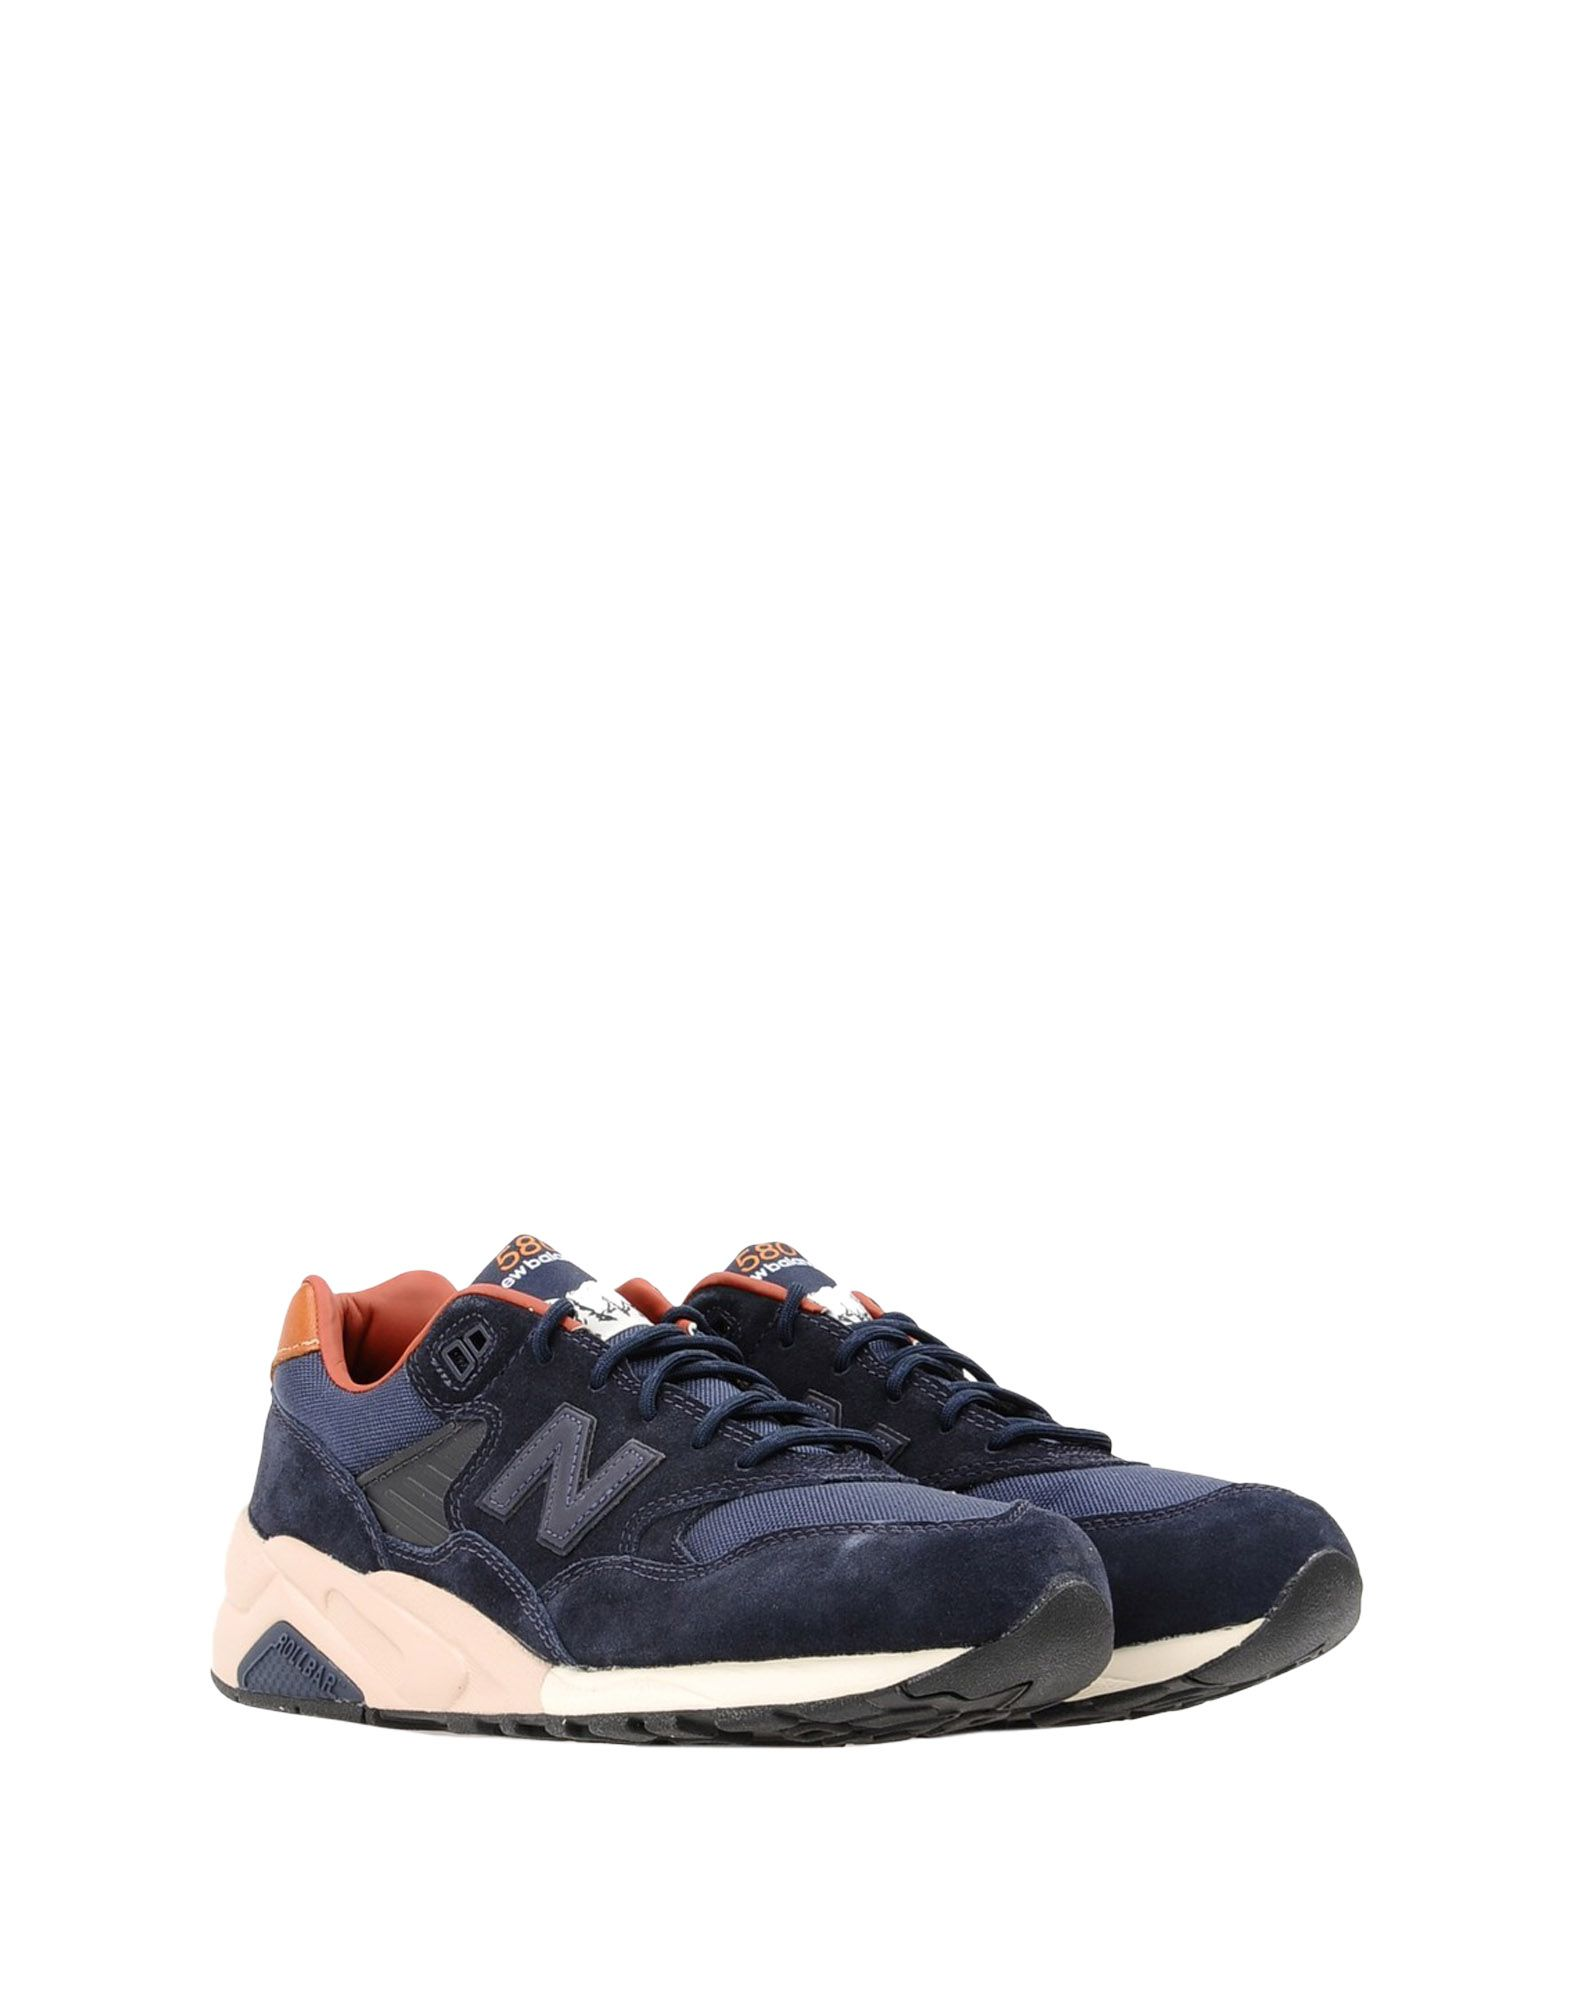 Sneakers New Balance 580 Winter Cordura Pack - Homme - Sneakers New Balance sur